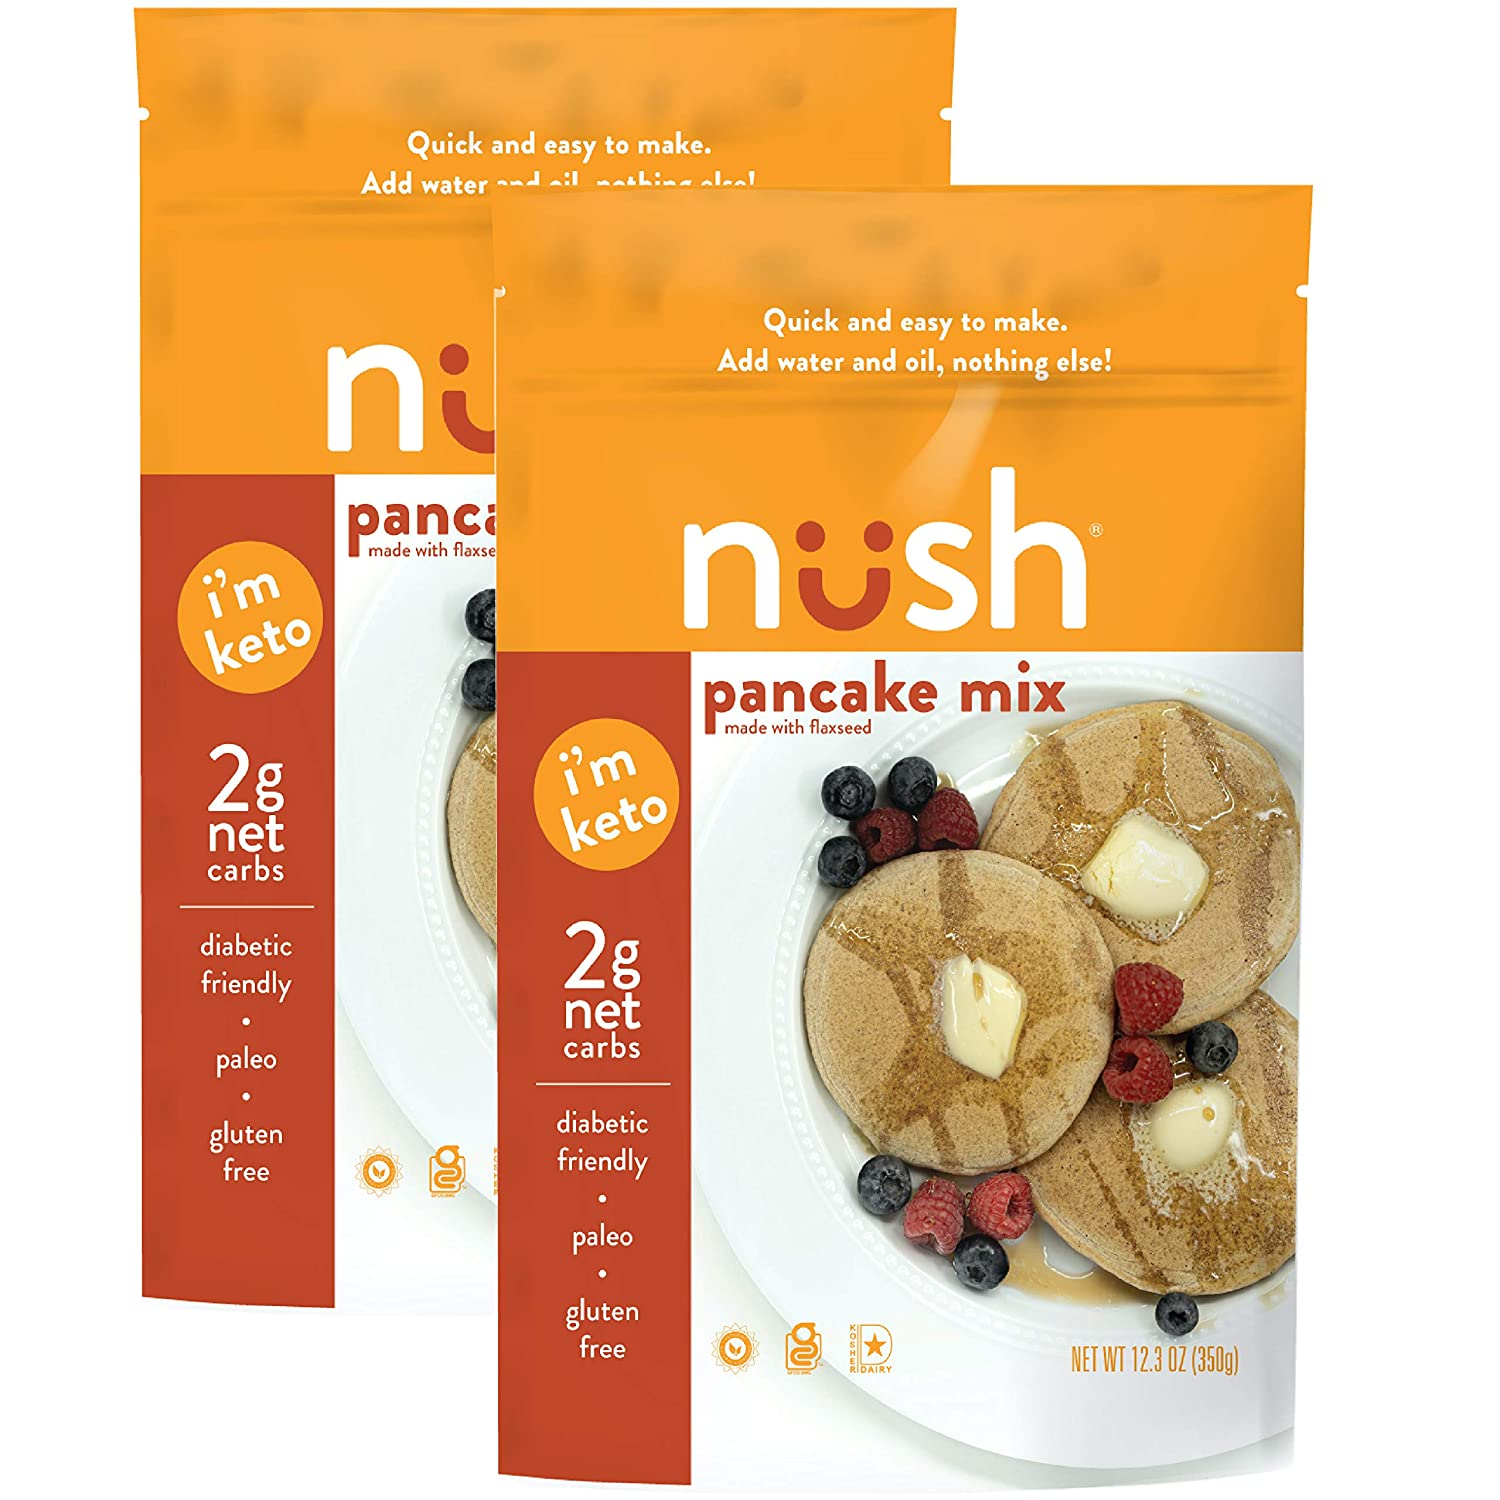 KETO Pancake Mix by Nush Foods (Original) – (2 Pack) - Gluten Free, Grain Free, Paleo, Sugar Free, High Omega 3, Diabetic Friendly, Healthy, Vegetarian, Low Glycemic, Dairy Free, Low Net Carb